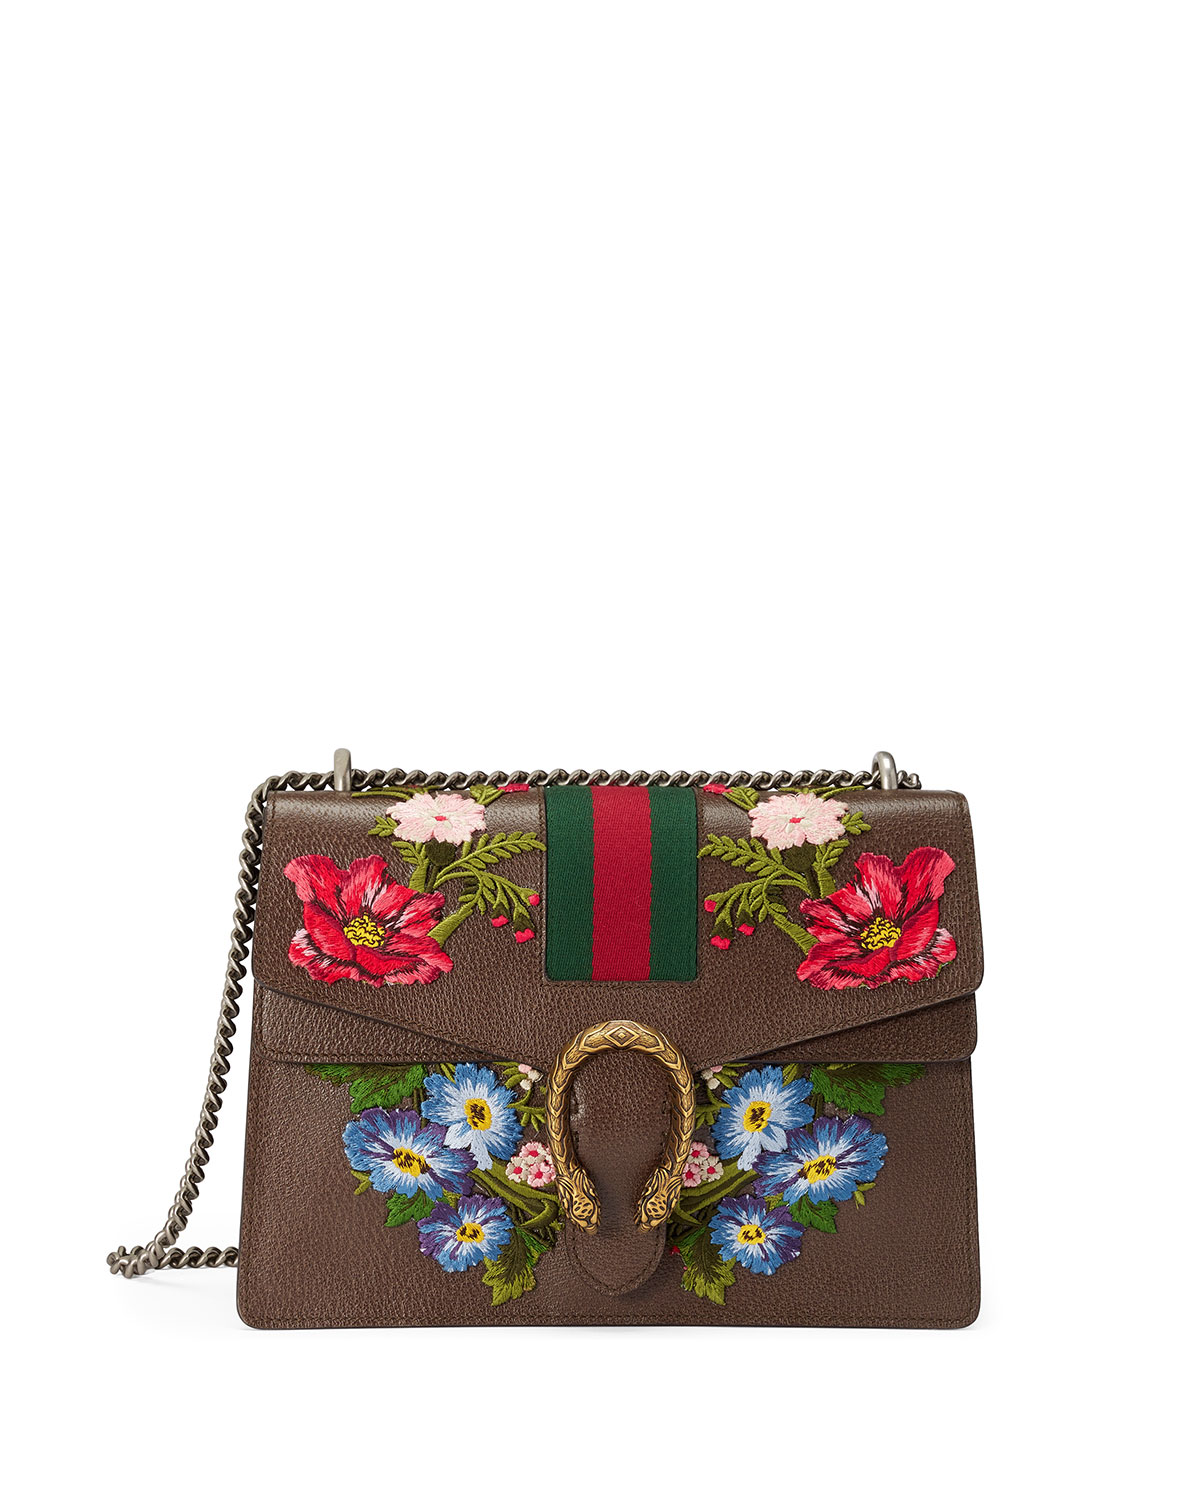 70abbba0cdc9 Gucci Dionysus Floral Embroidered Shoulder Bag, Gray/Multi | Neiman ...